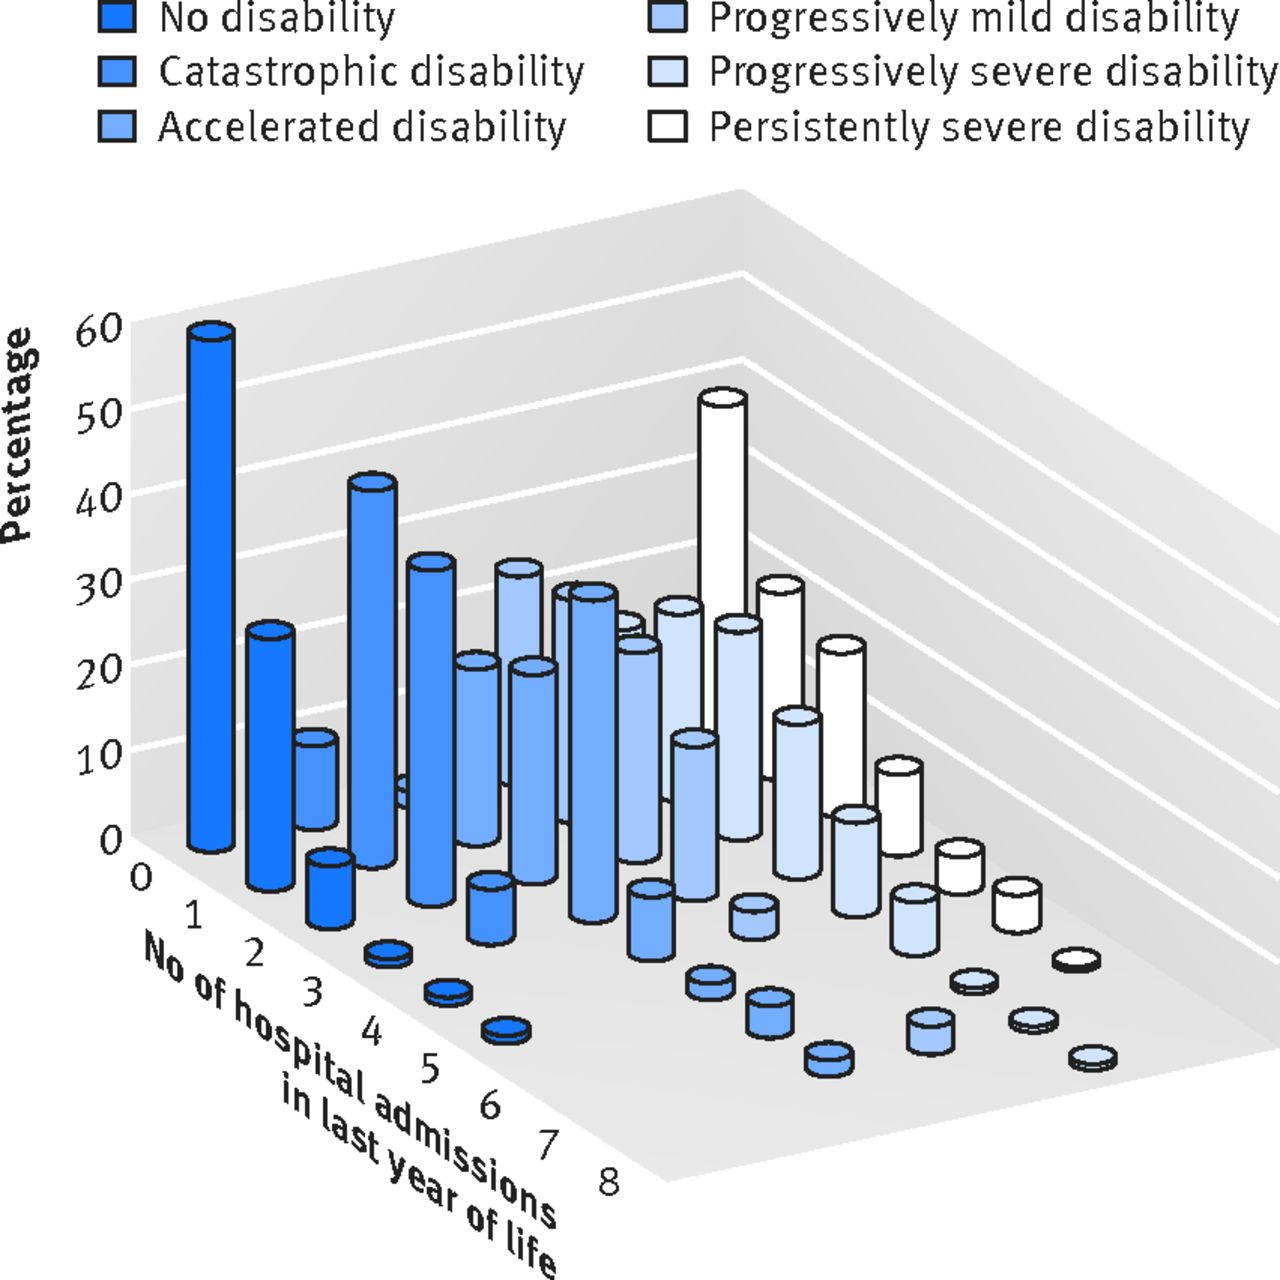 The role of intervening hospital admissions on trajectories